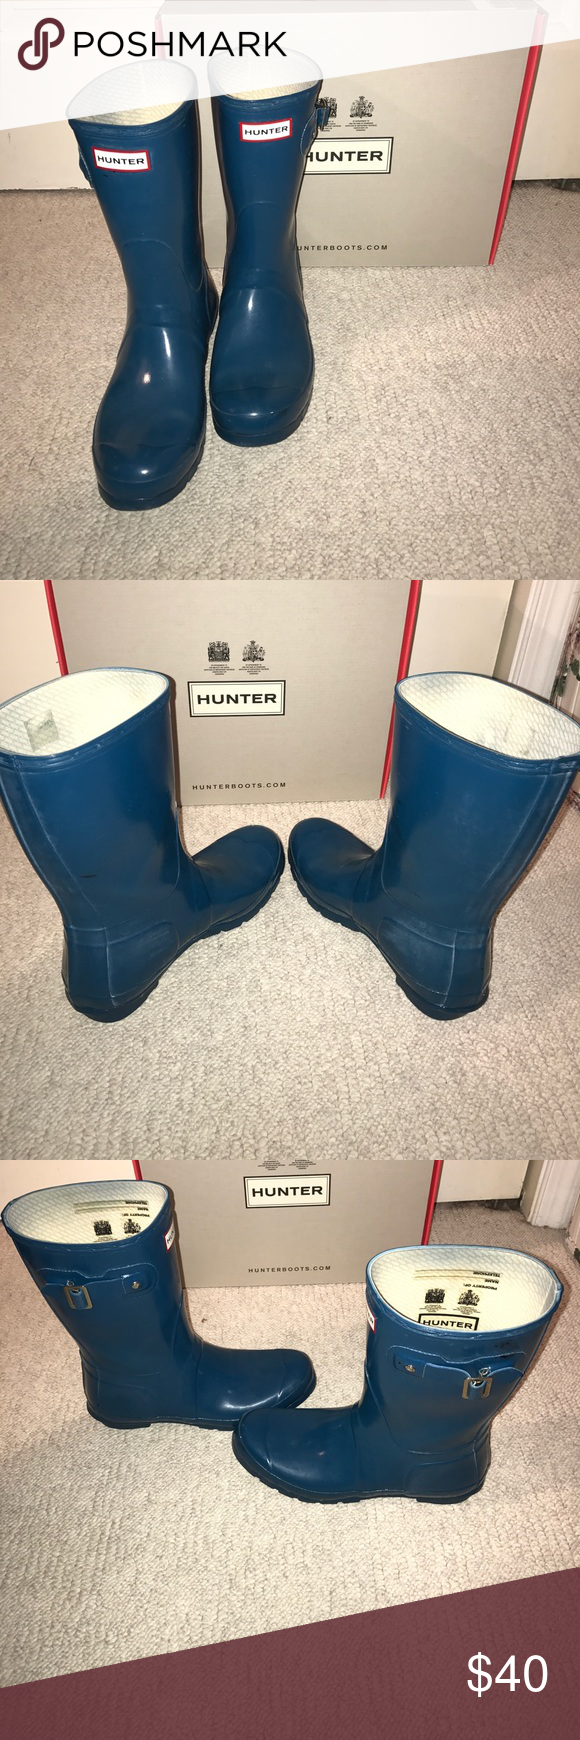 HUNTER boots, Size 8 Blue medium height, well-loved, some black tar specks on them from working outside. Some wear on inner liner. Left boot has some liner breaking apart (see last pic) Originally $110, comes from a smoke-free home :) Hunter Boots Shoes Winter & Rain Boots